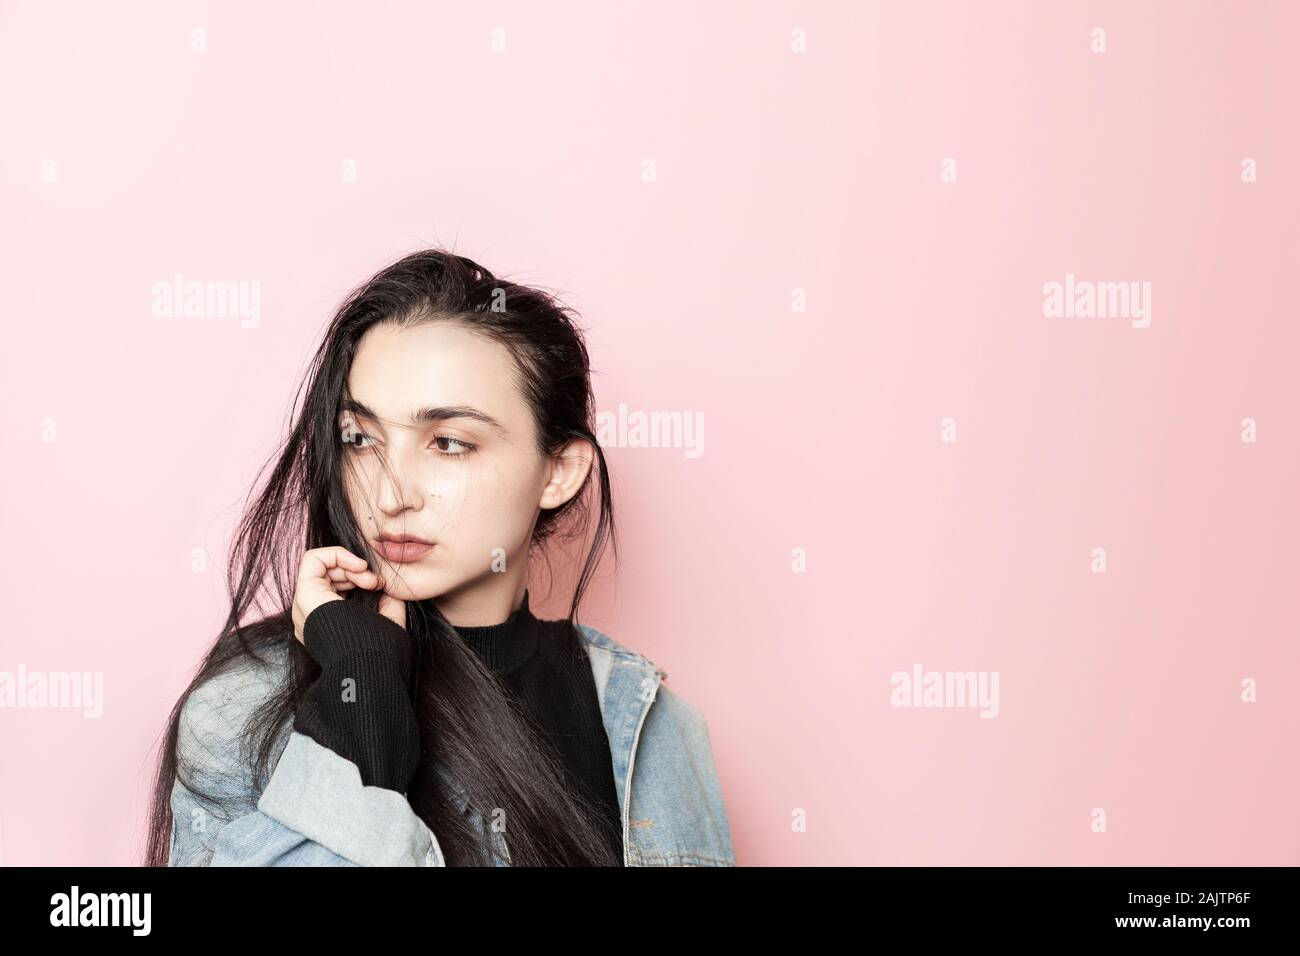 Portrait of happy middle-eastern female posing against a pink background. Studio portrait of a stylish young woman. Beauty, fashion, seasonal vogue Stock Photo